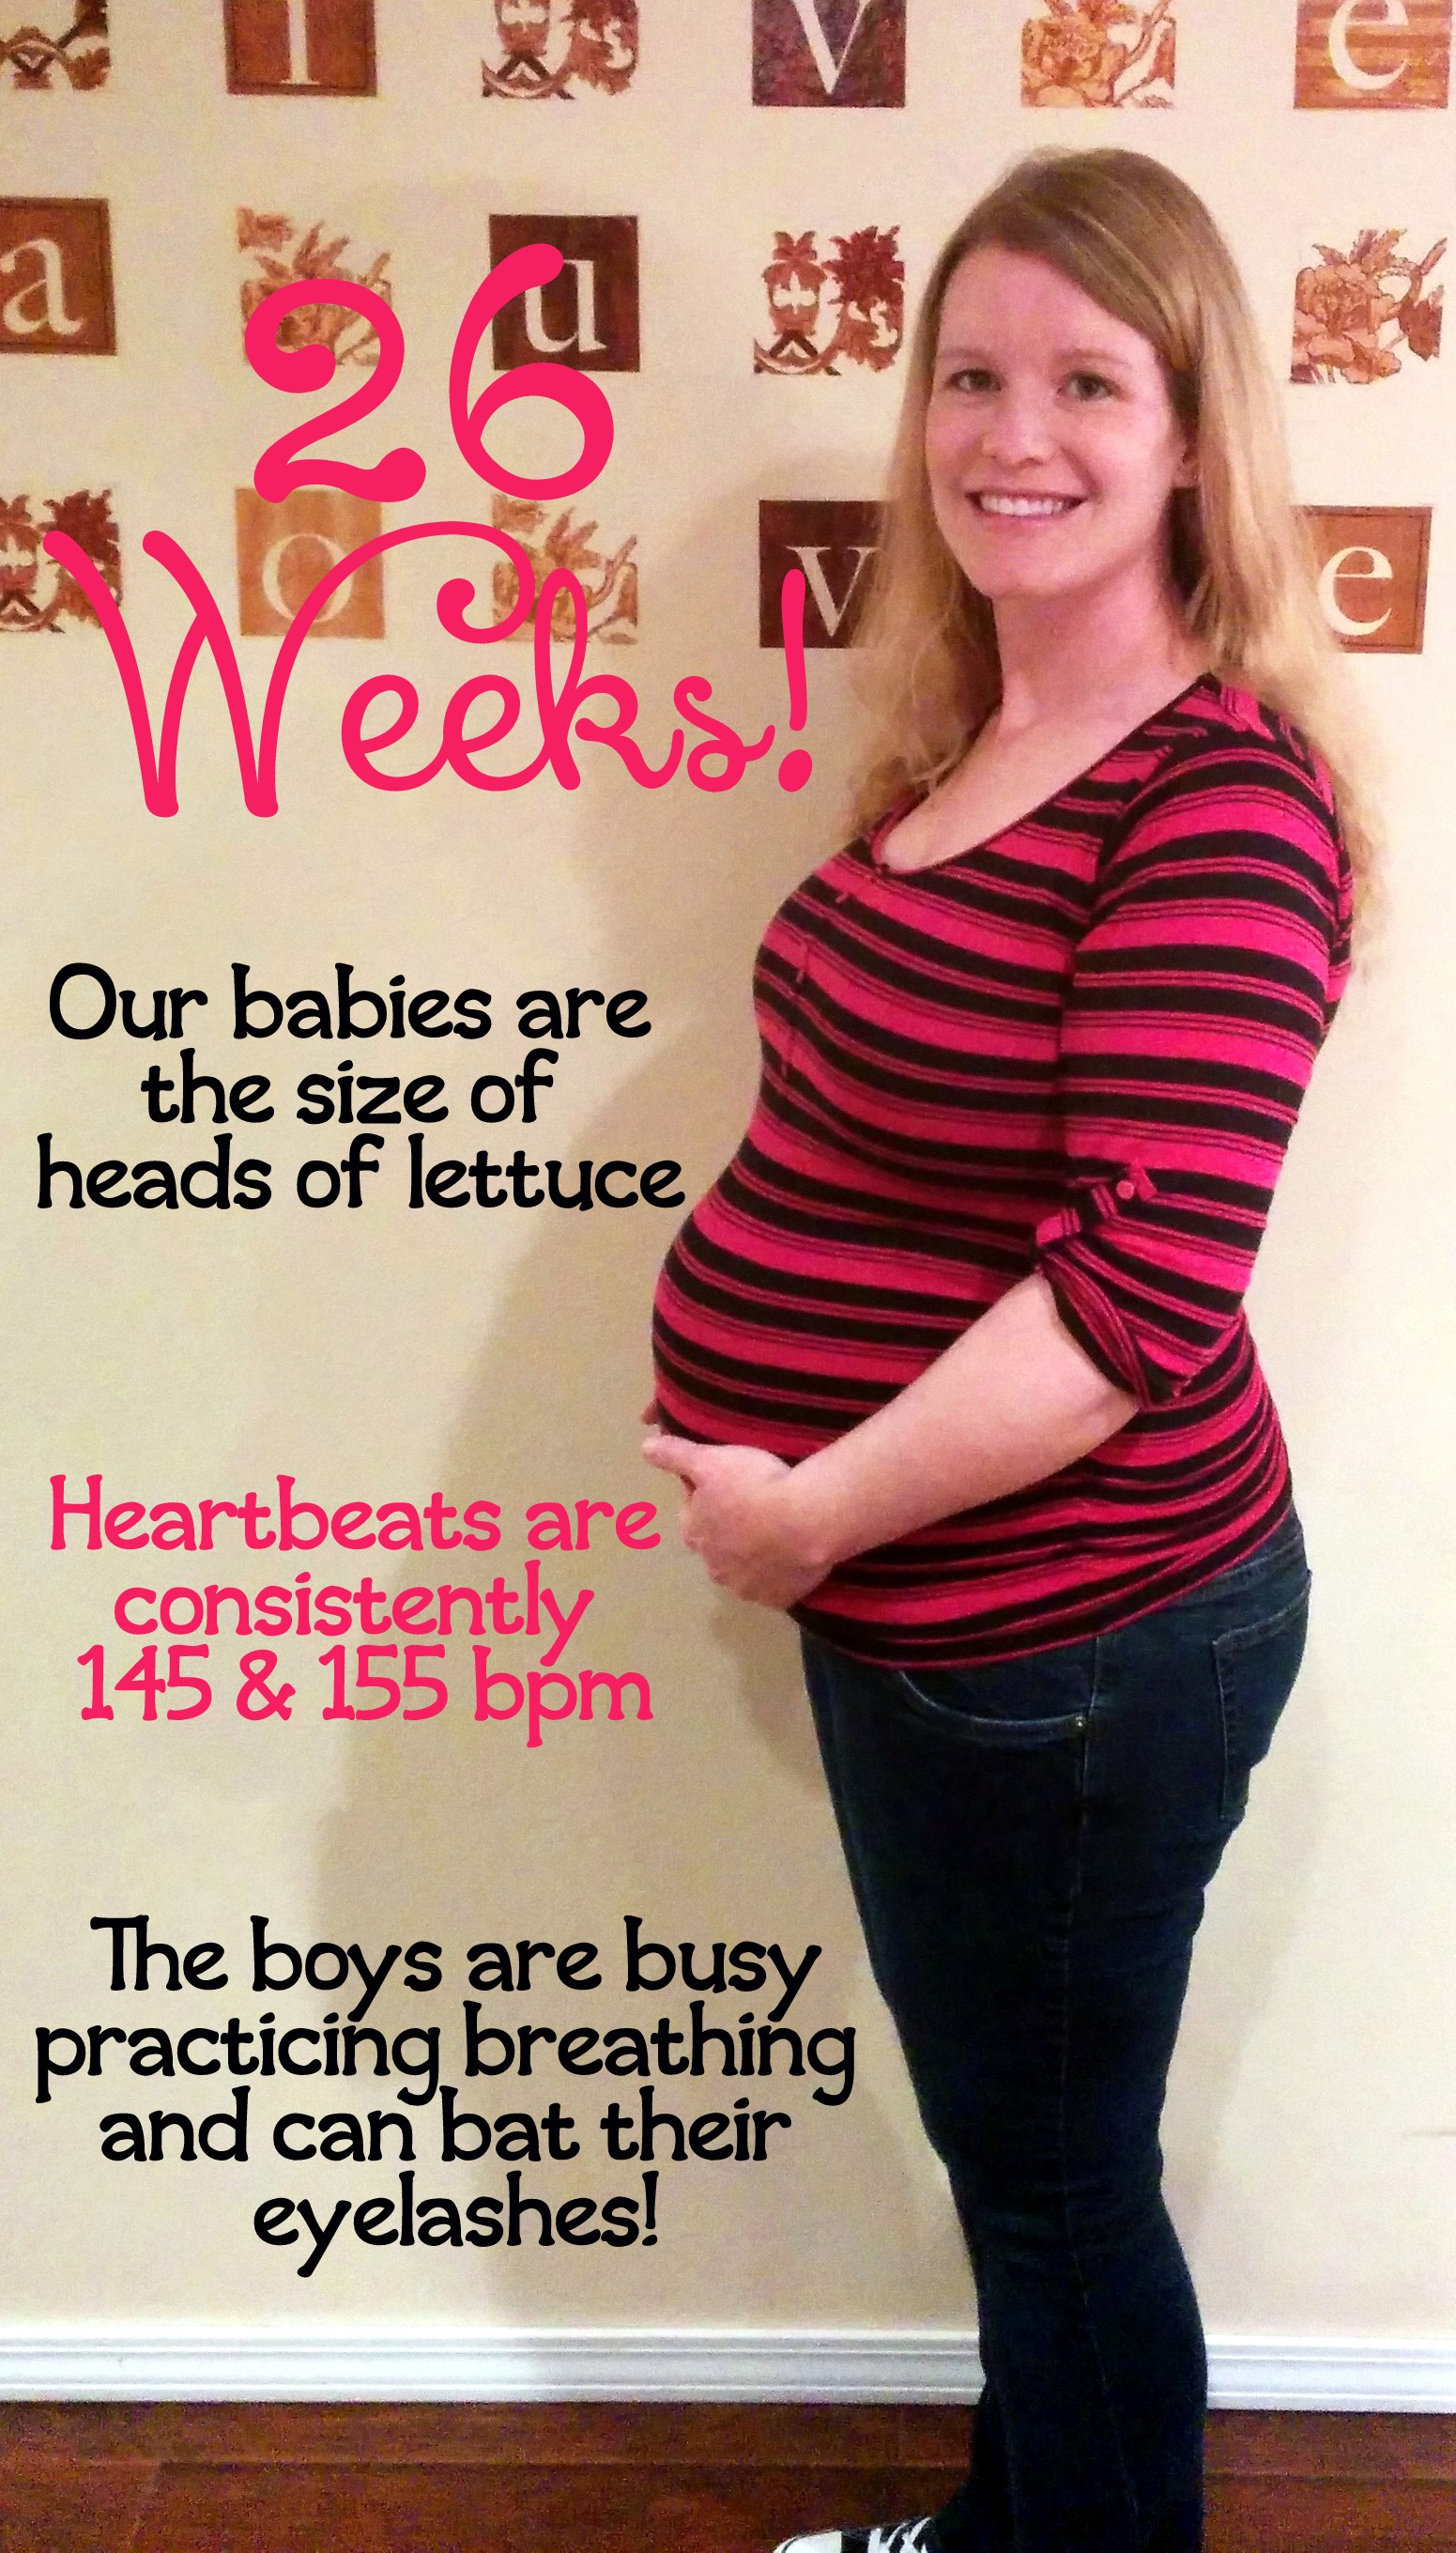 Remarkable, valuable Average weight gain at 26 weeks pregnant